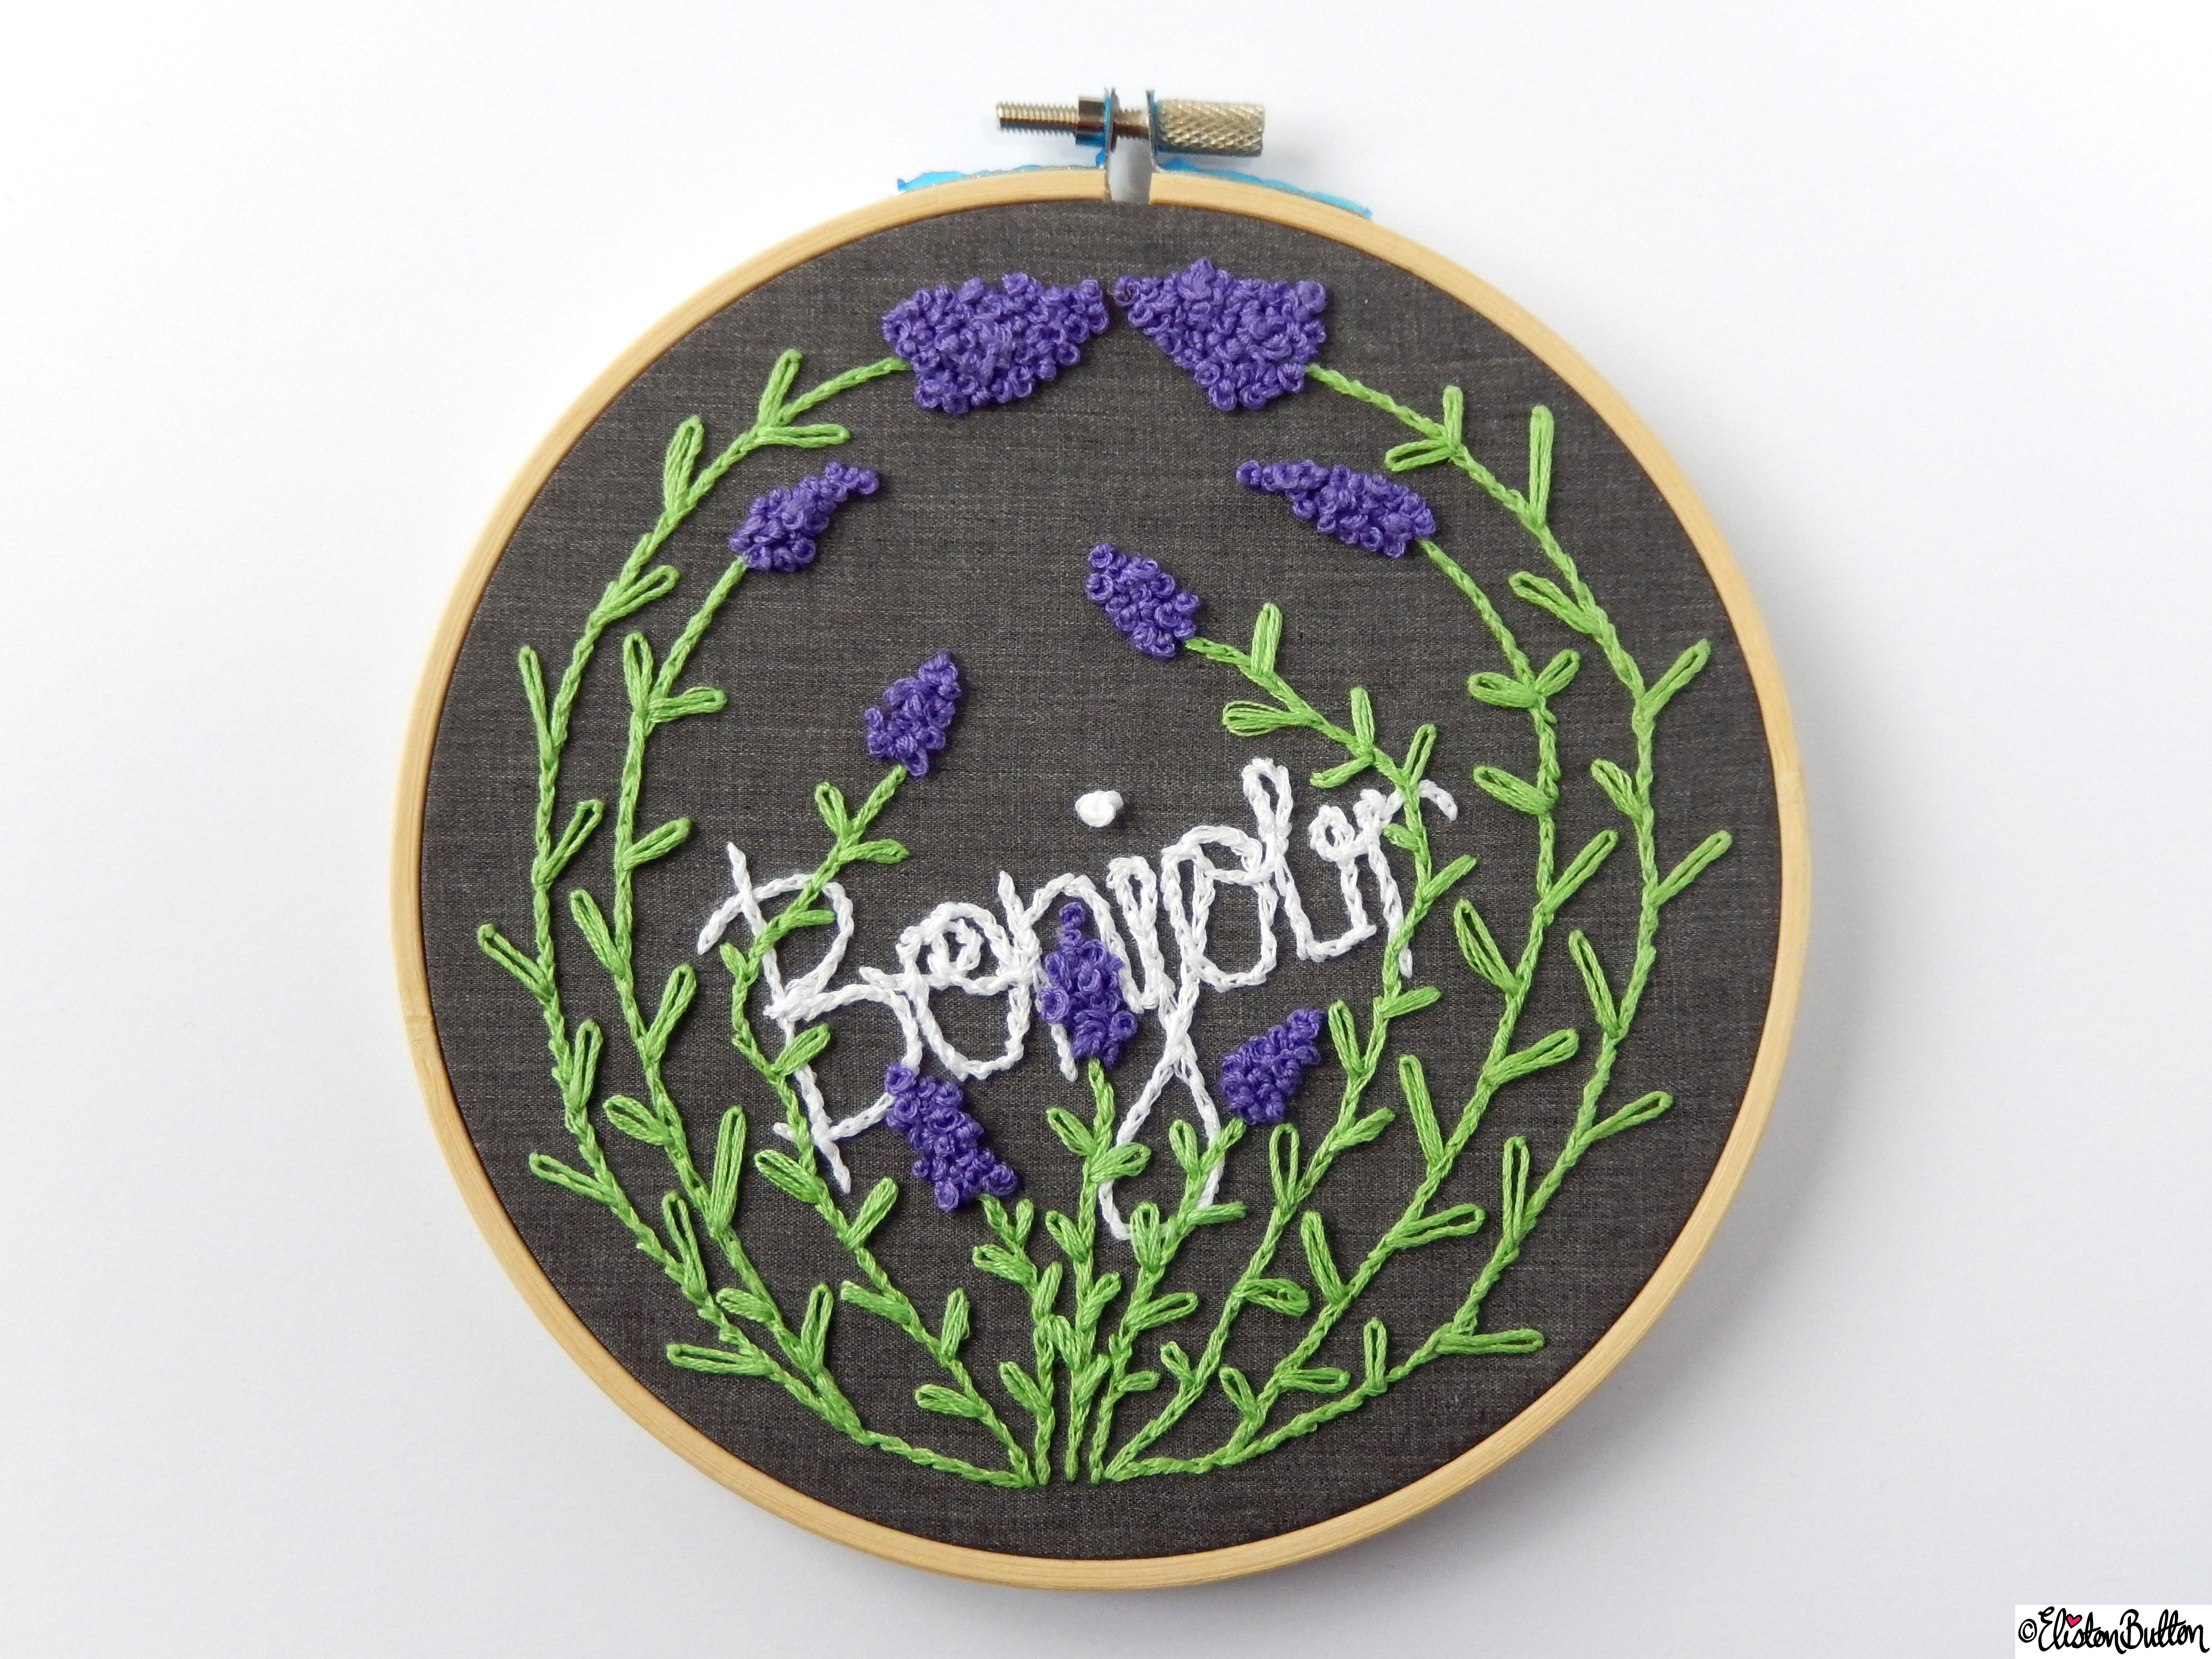 Bonjour French Inspired Embroidery Hoop Wall Art  (2) - Create 28 - No.28 - Embroidery Hoop Wall Art at www.elistonbutton.com - Eliston Button - That Crafty Kid – Art, Design, Craft & Adventure.